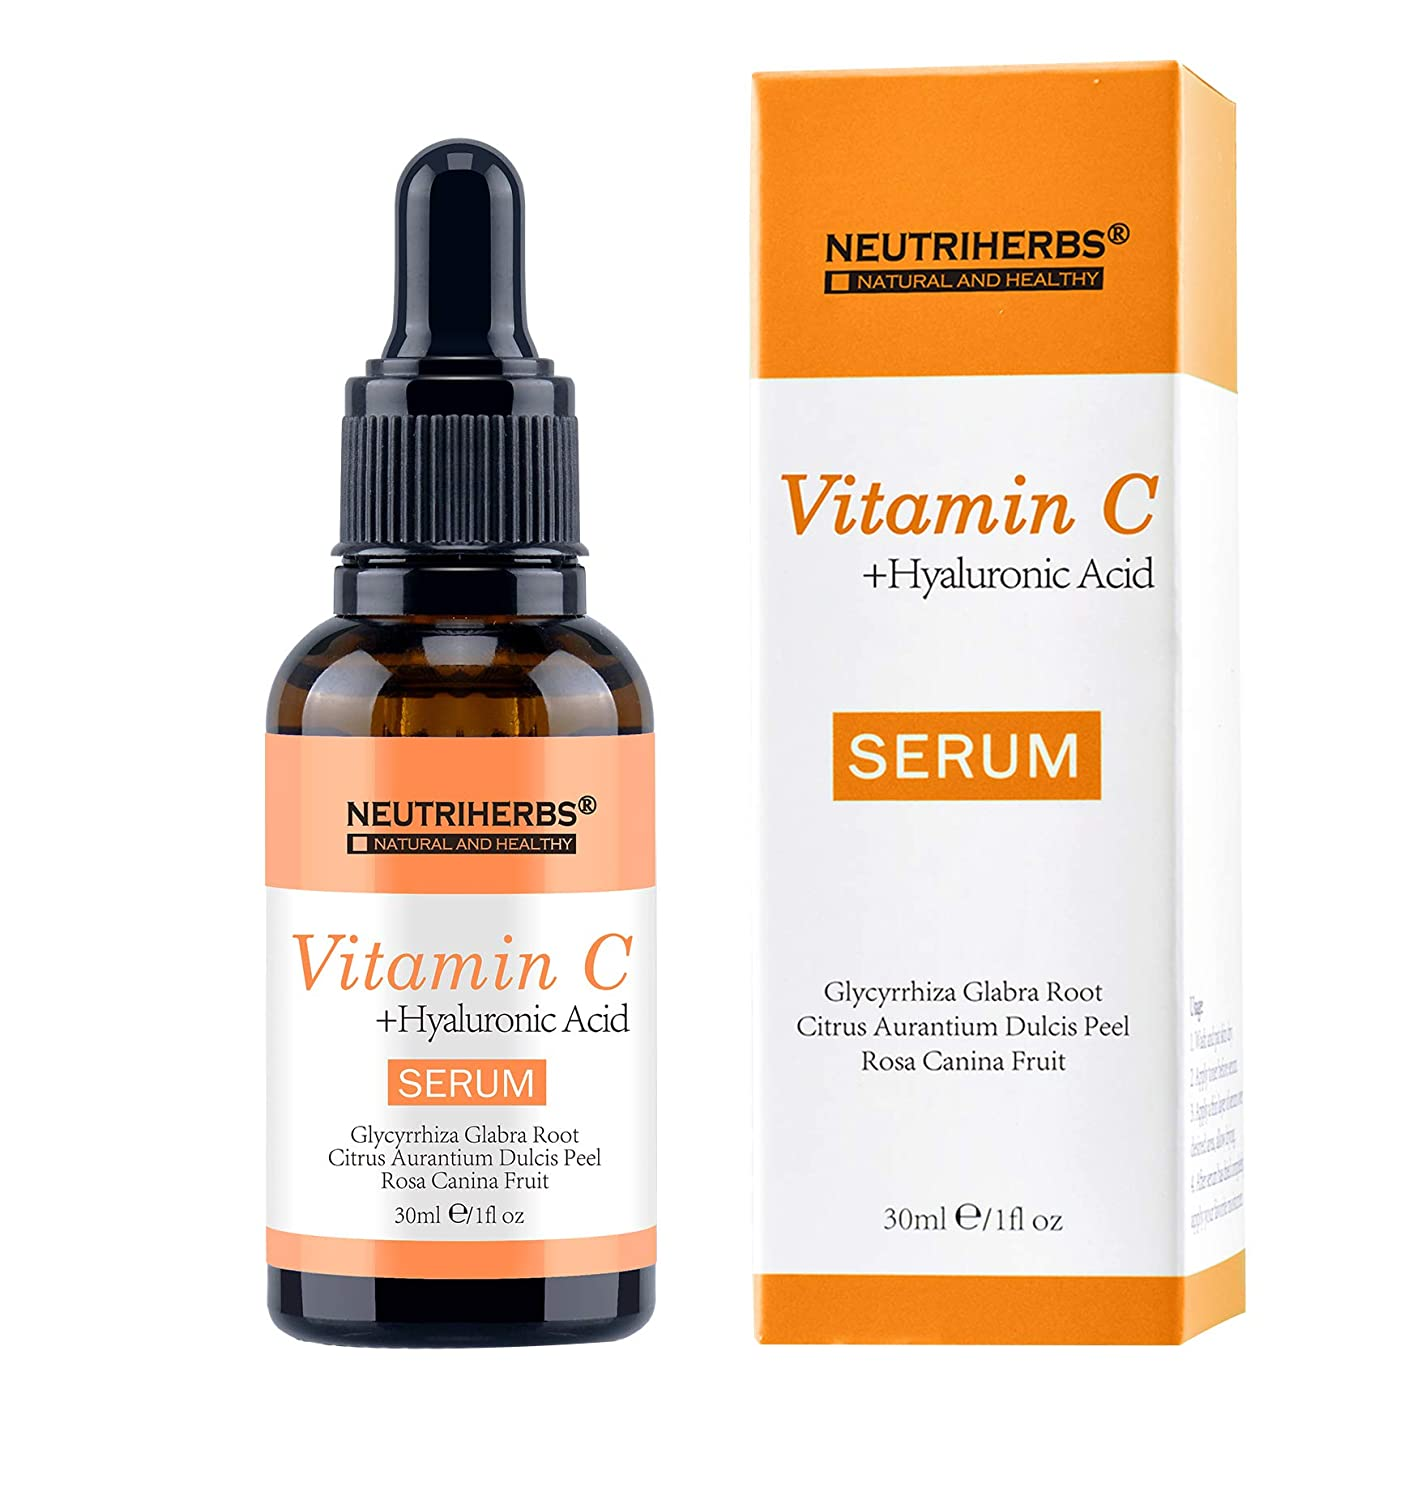 NEUTRIHERBS Vitamin C Serum for Face, 20% Vitamin C combined with Hyaluronic Acid Serum Best Skin Whitening Moisturizing Face Treatment Serum 30ml/pc=1 fl oz